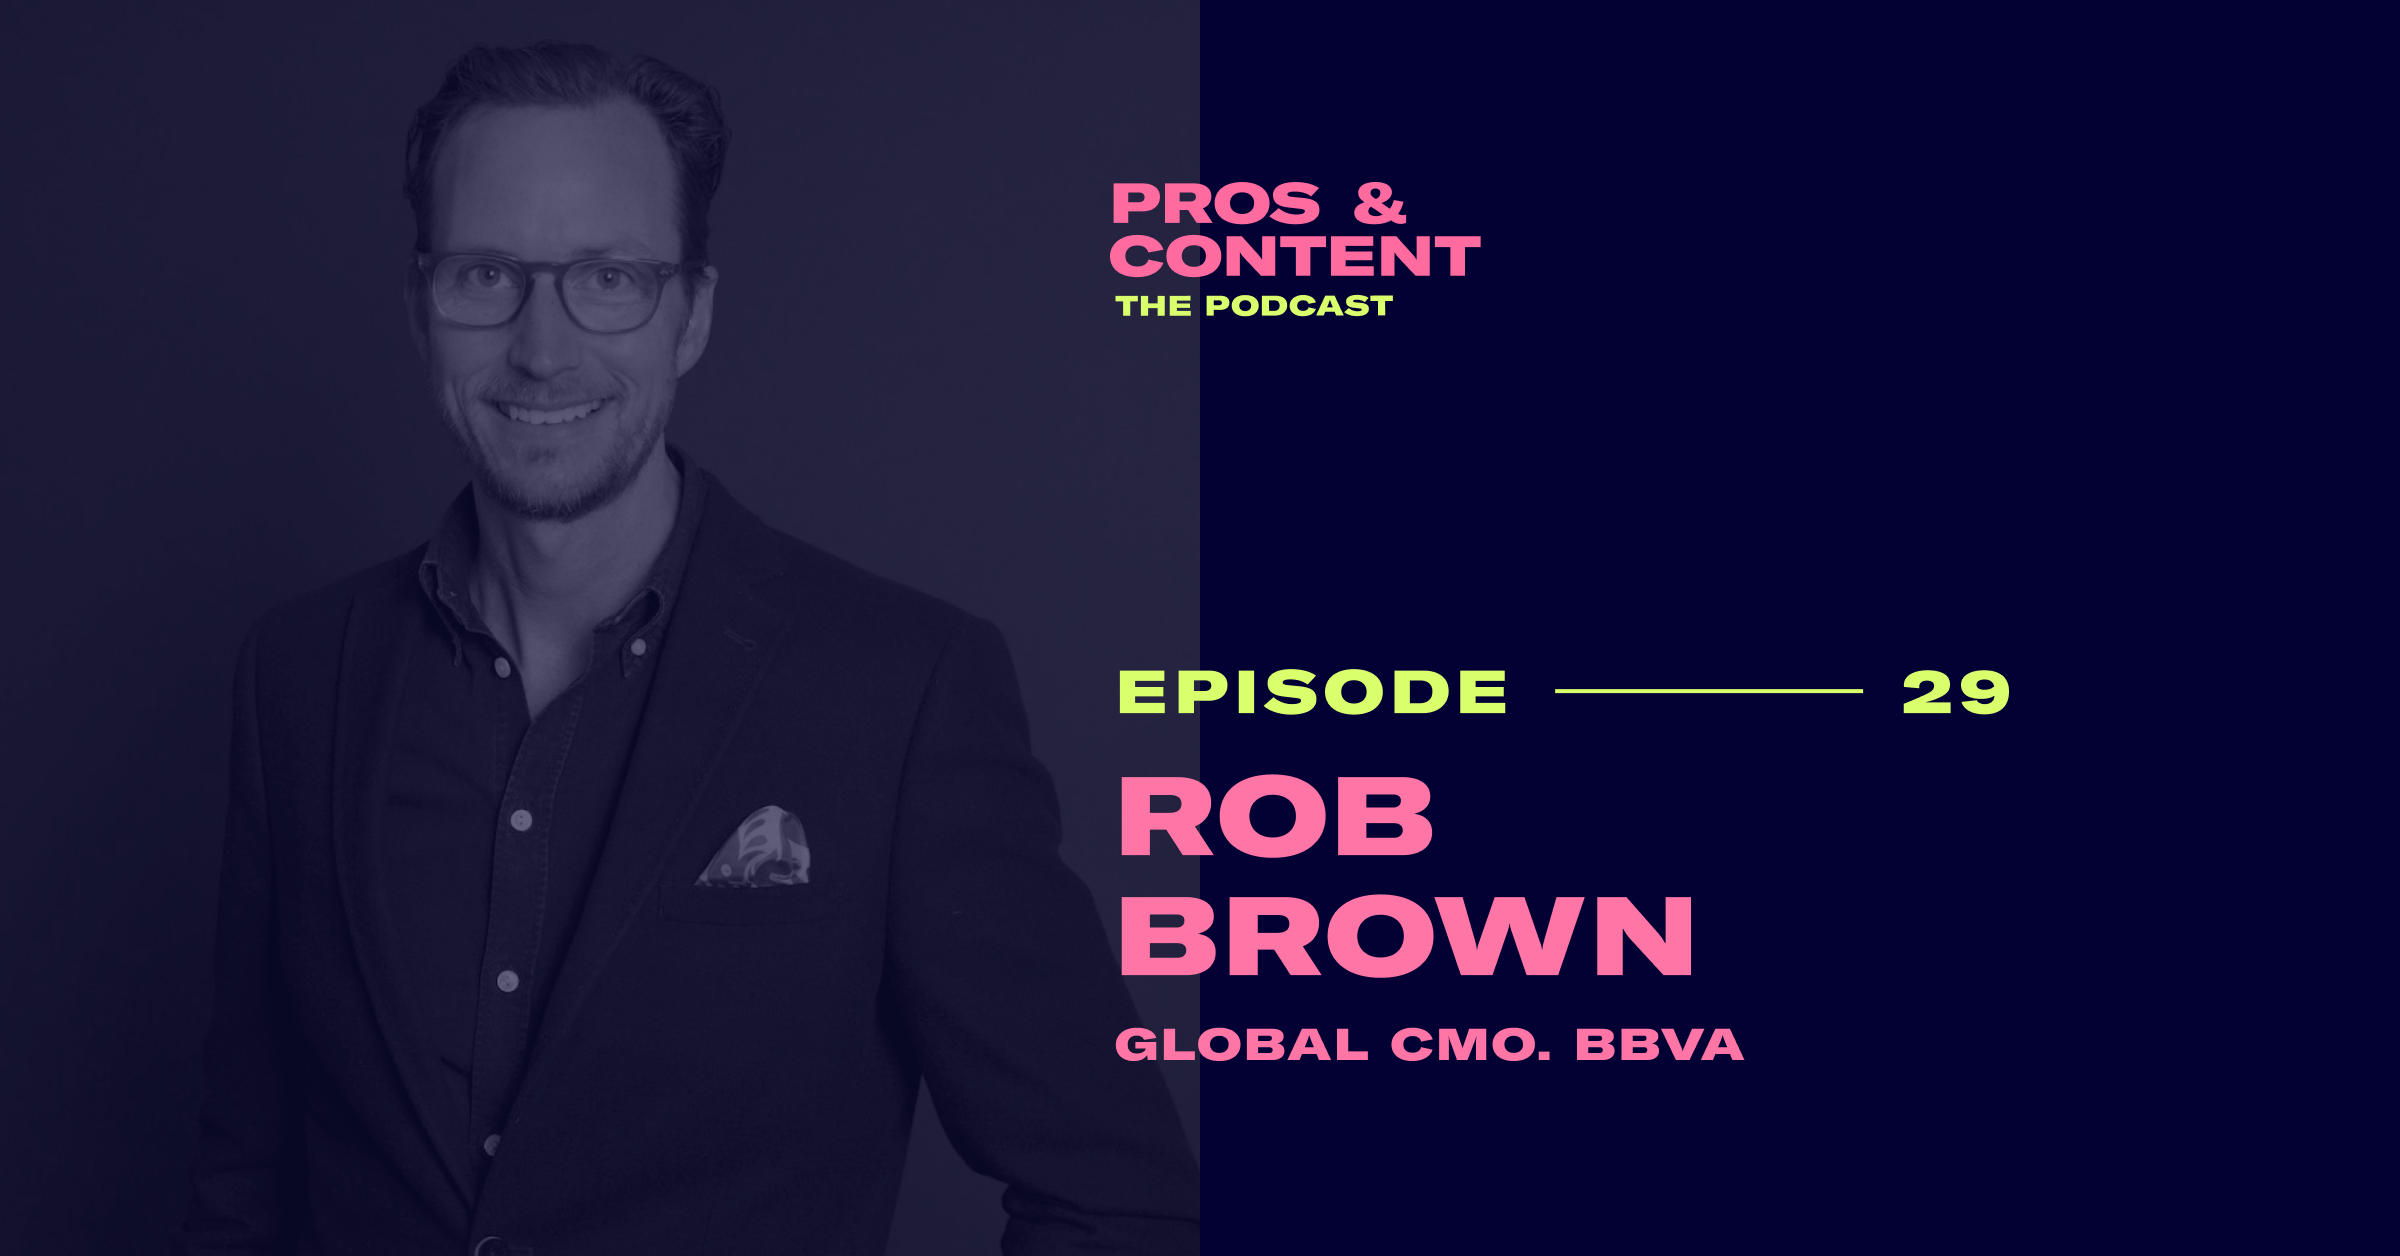 Pros & Content Podcast: Rob Brown